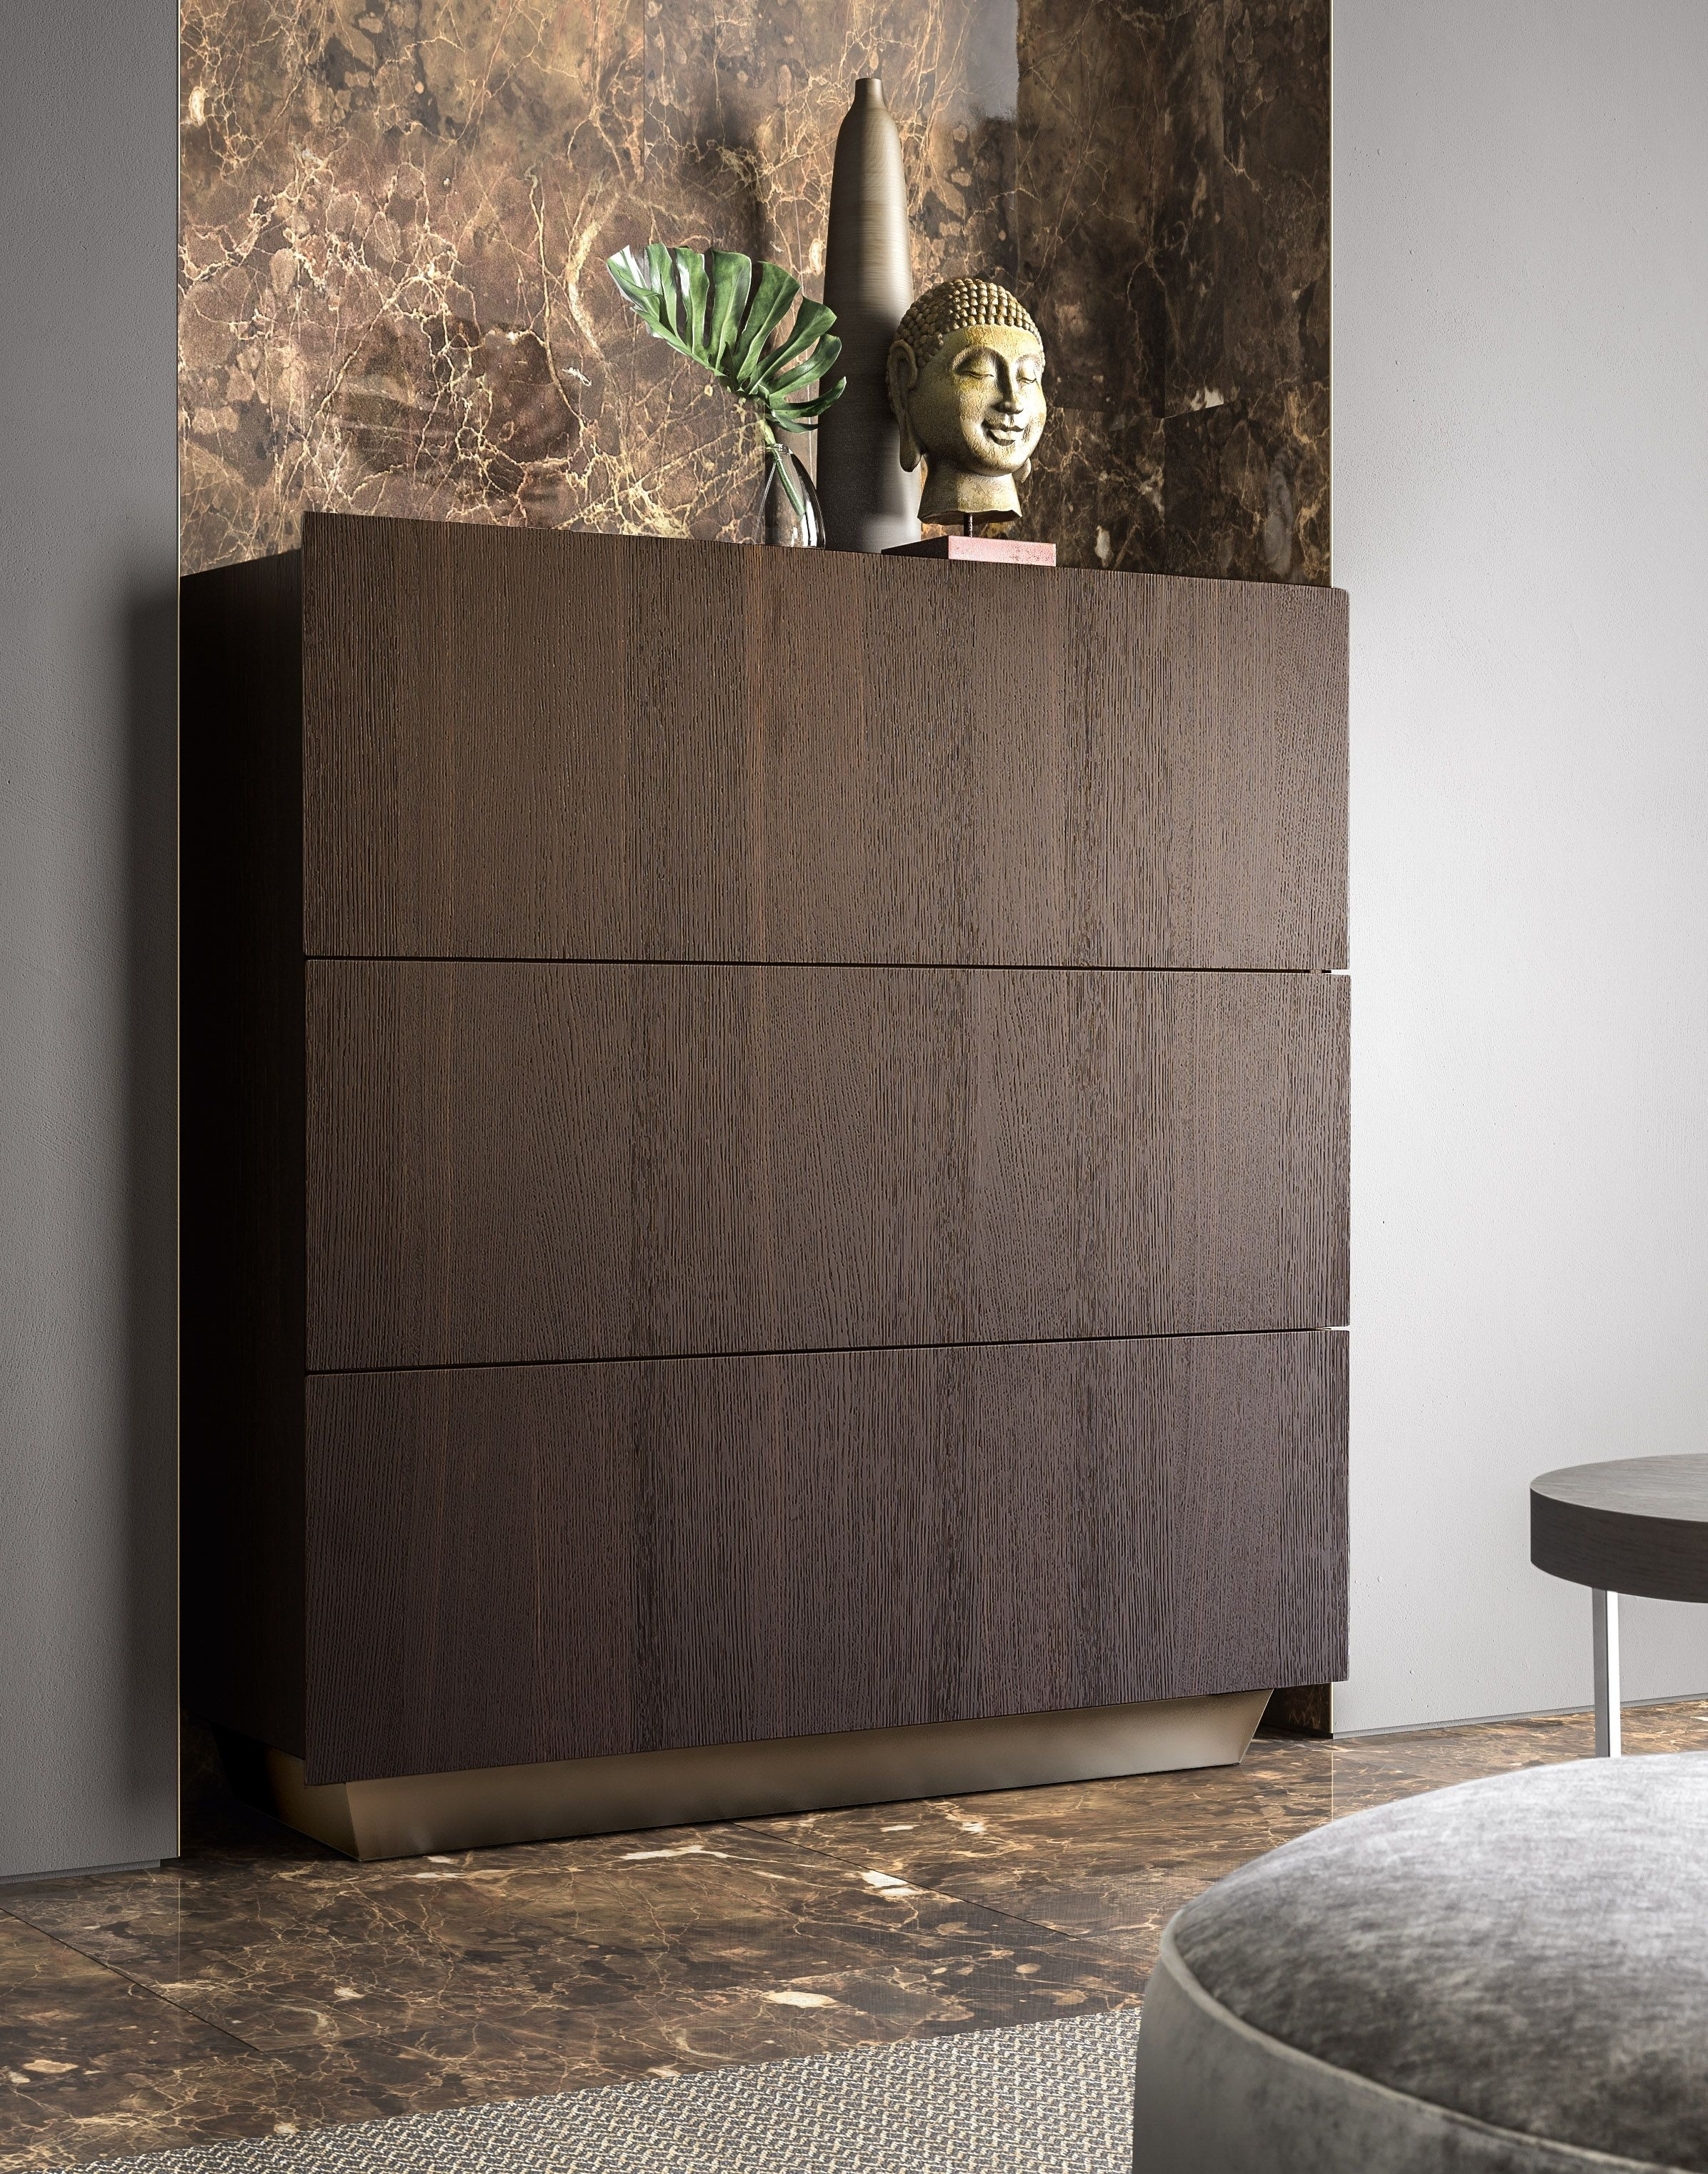 Tosca Sideboard With Burnt Oak Exterior And Bronze Base | Pianca intended for Burnt Oak Wood Sideboards (Image 30 of 30)